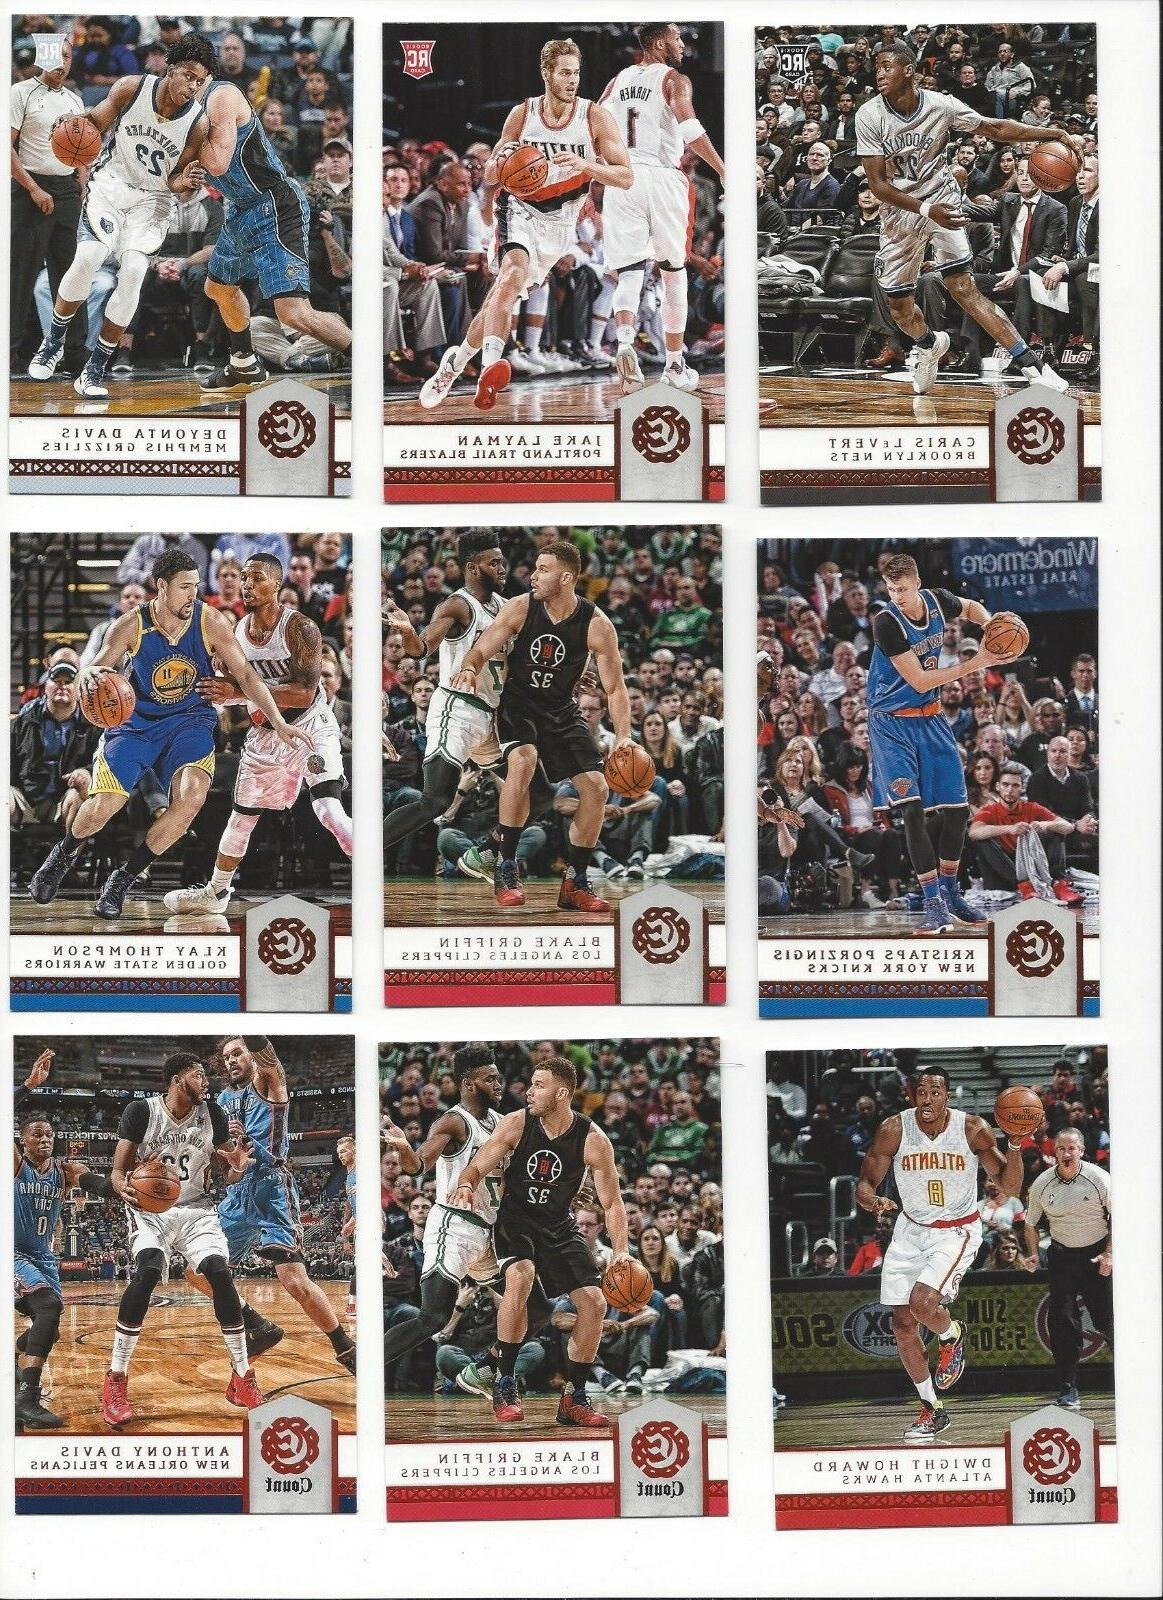 2016 17 panini excalibur base or count